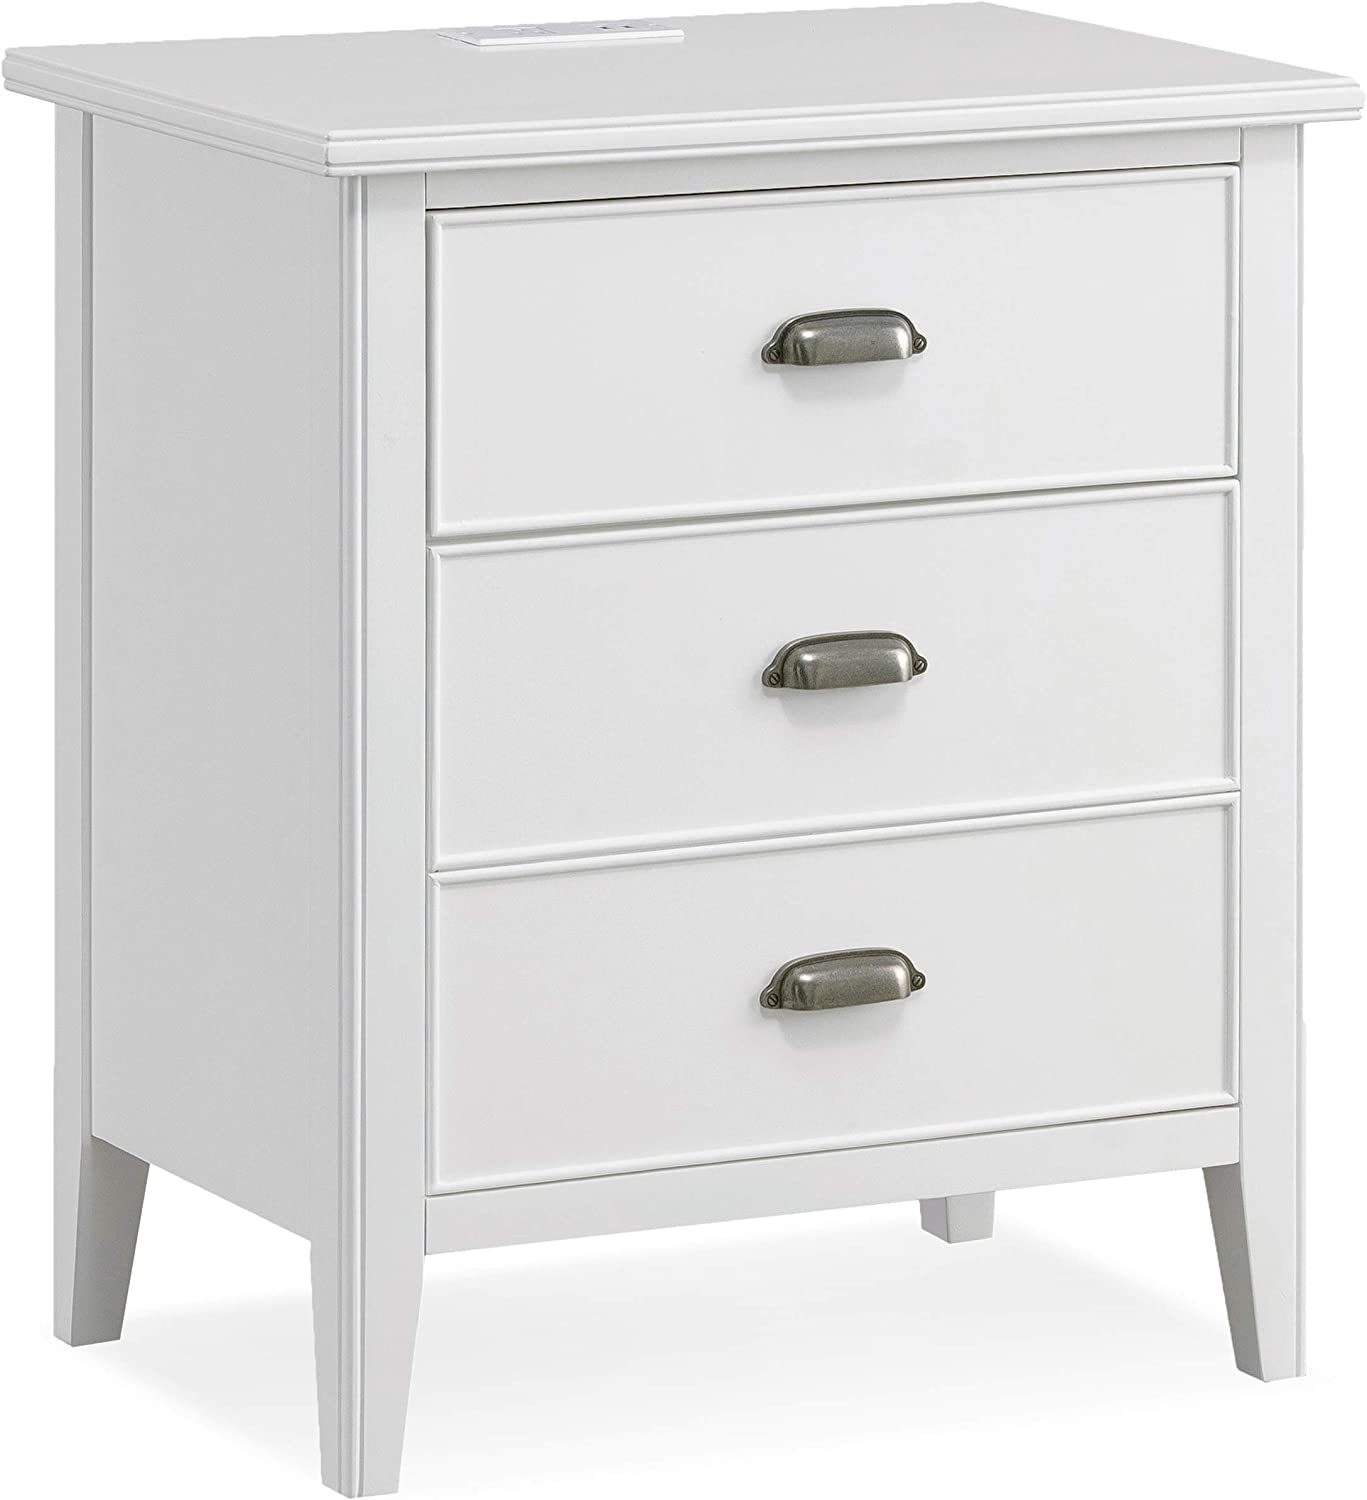 Leick Laurent Collection Nightstand, White